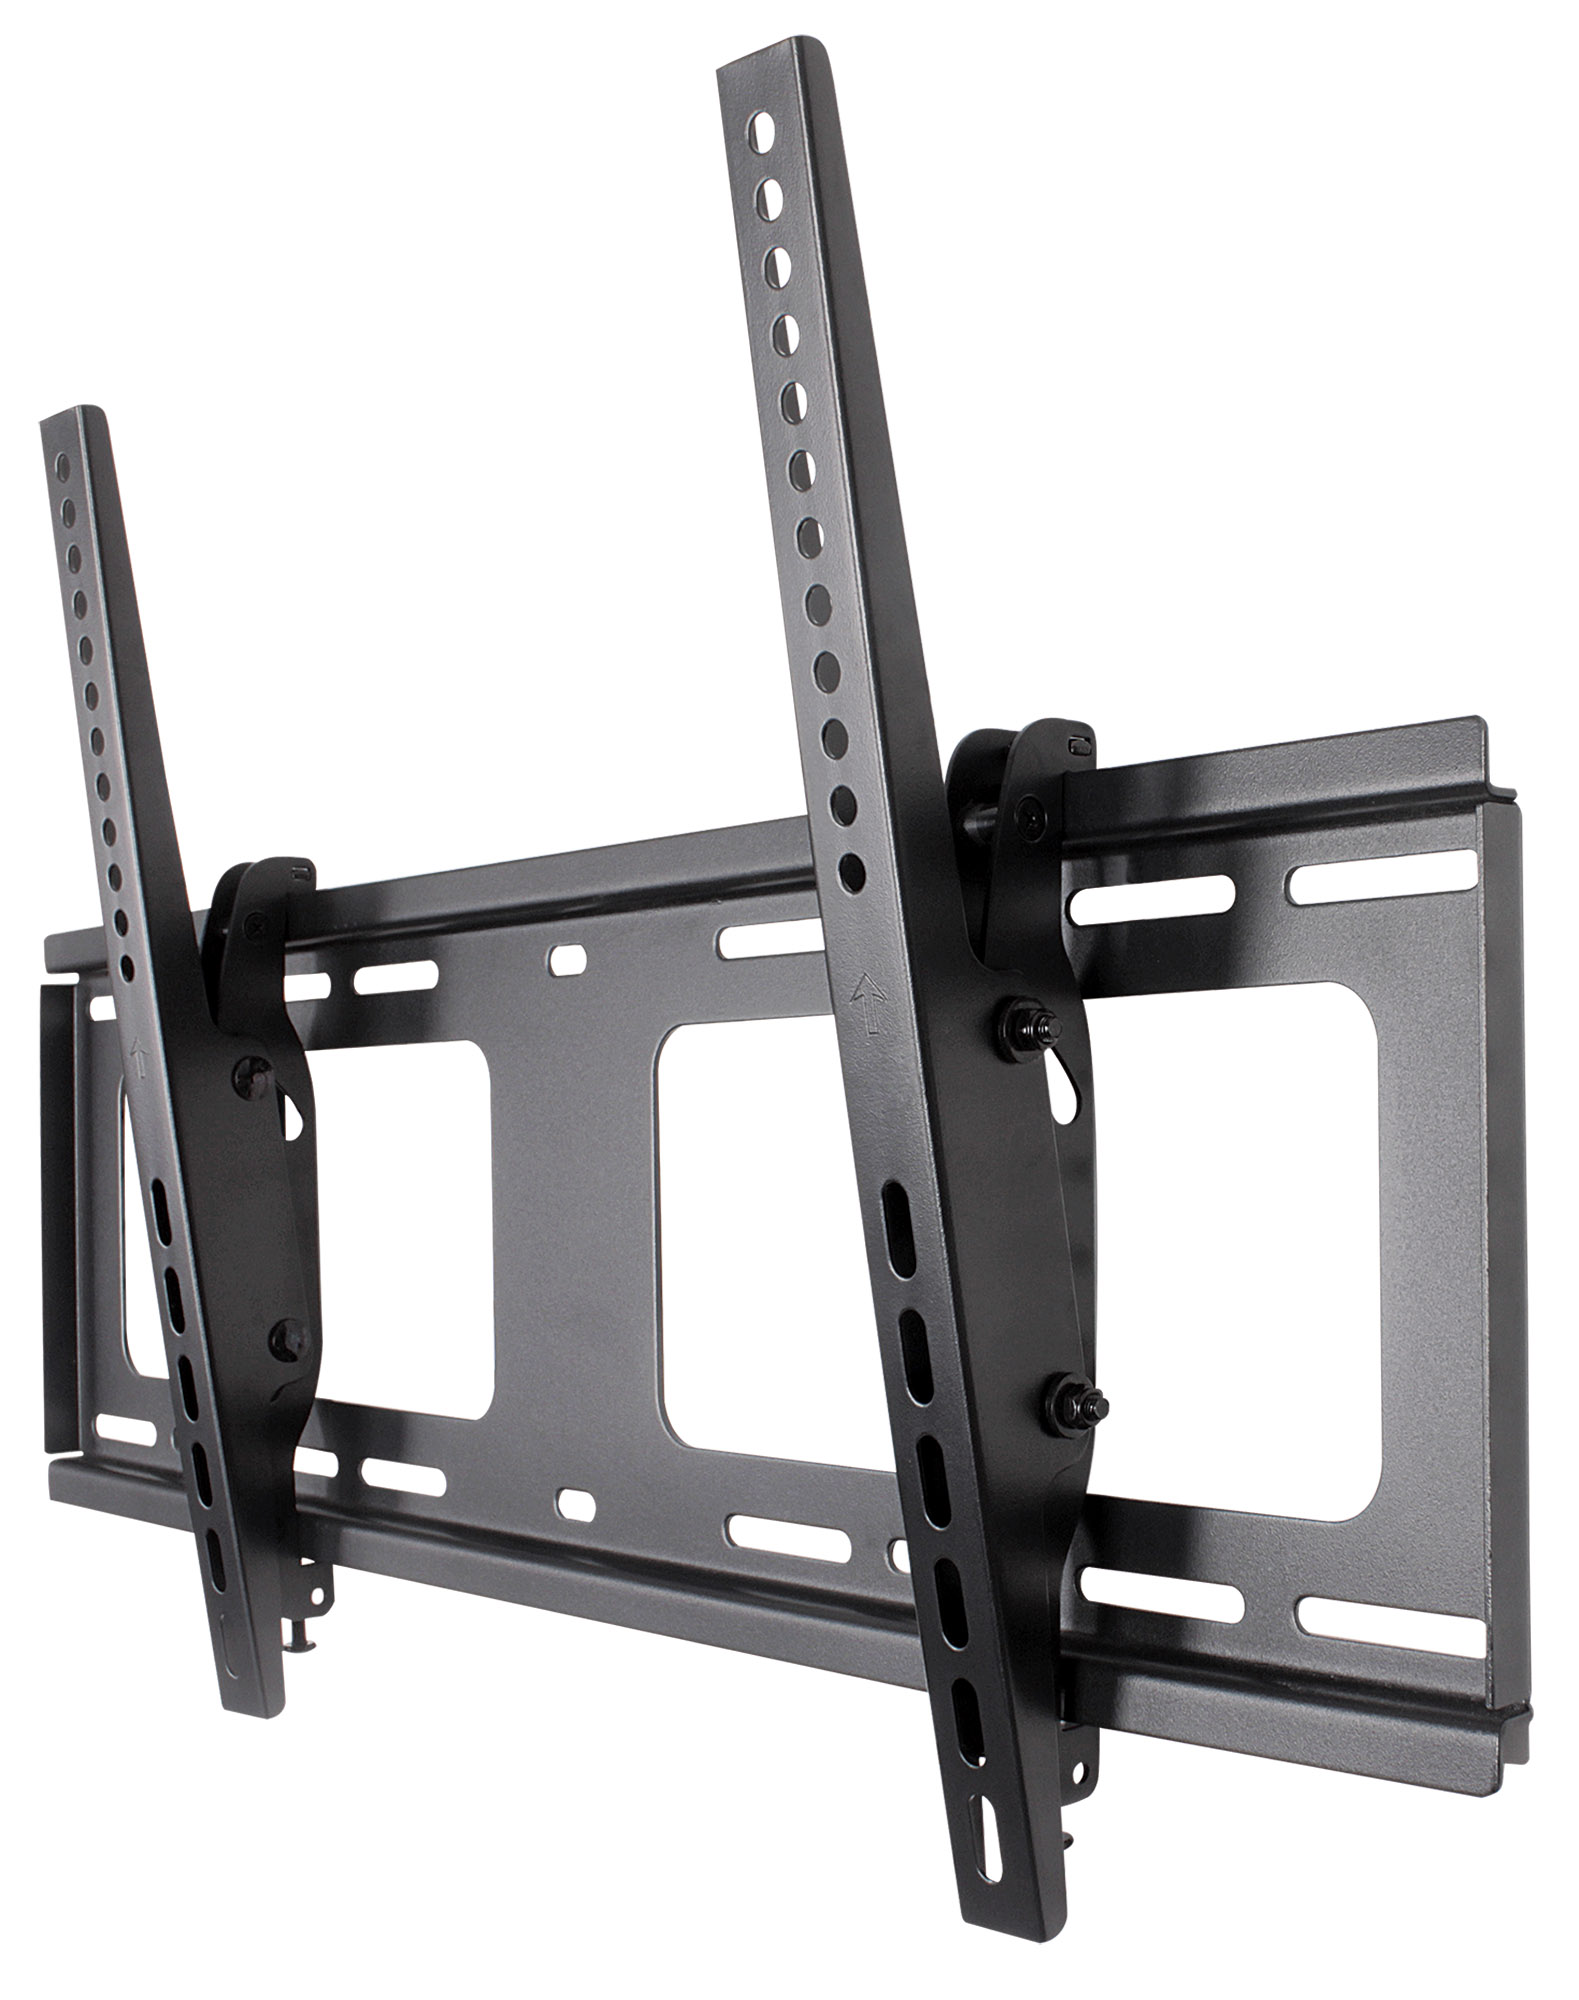 Universal Flat-Panel TV Tilting Wall Mount with Post-Leveling Adjustment